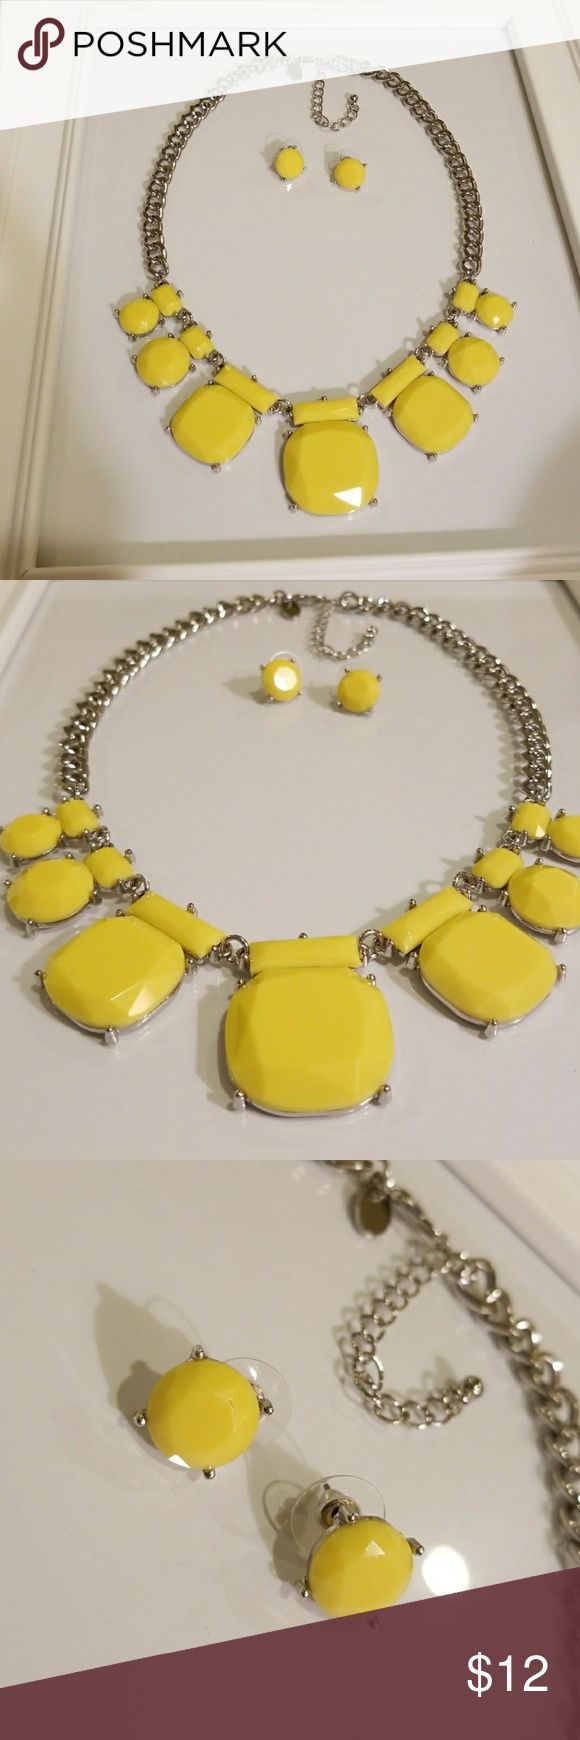 Yellow statement necklace NWOT Super fun bright yellow chunky necklace with silver adjustable chain.  Complete with matching earrings! NEVER WORN!! Charming Charlie Jewelry Necklaces